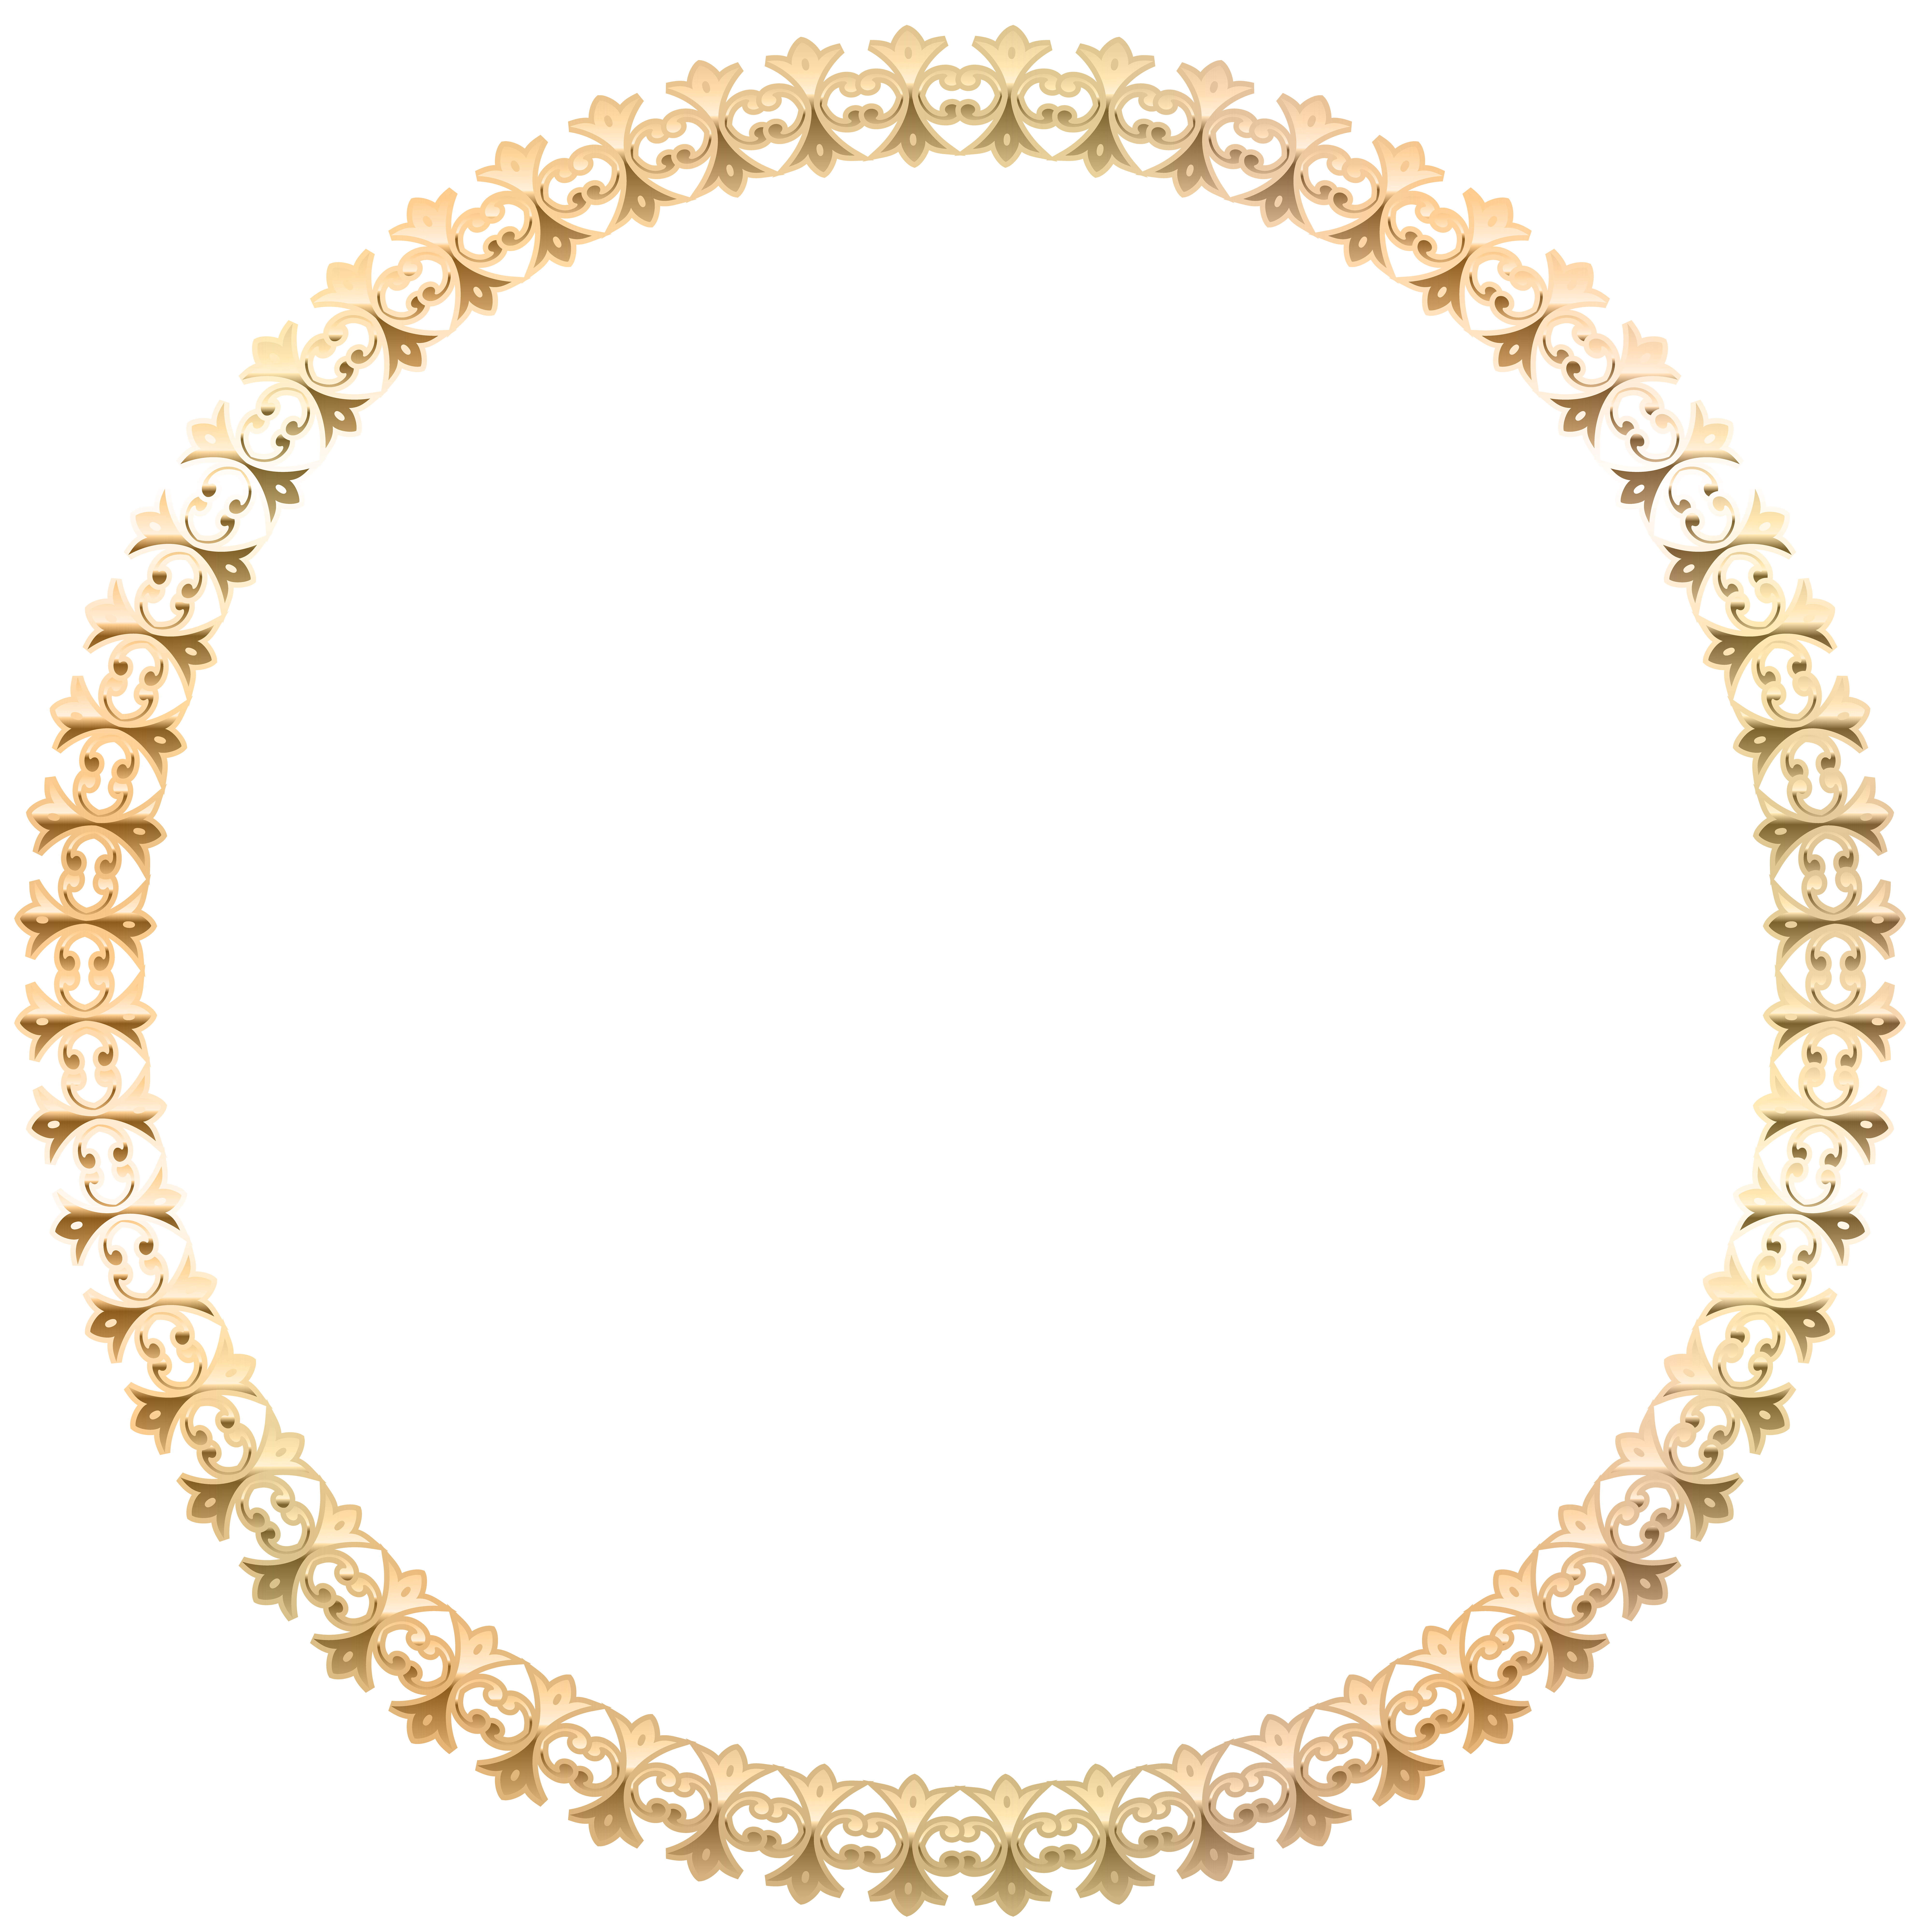 Border transparent image gallery. Round gold frame png